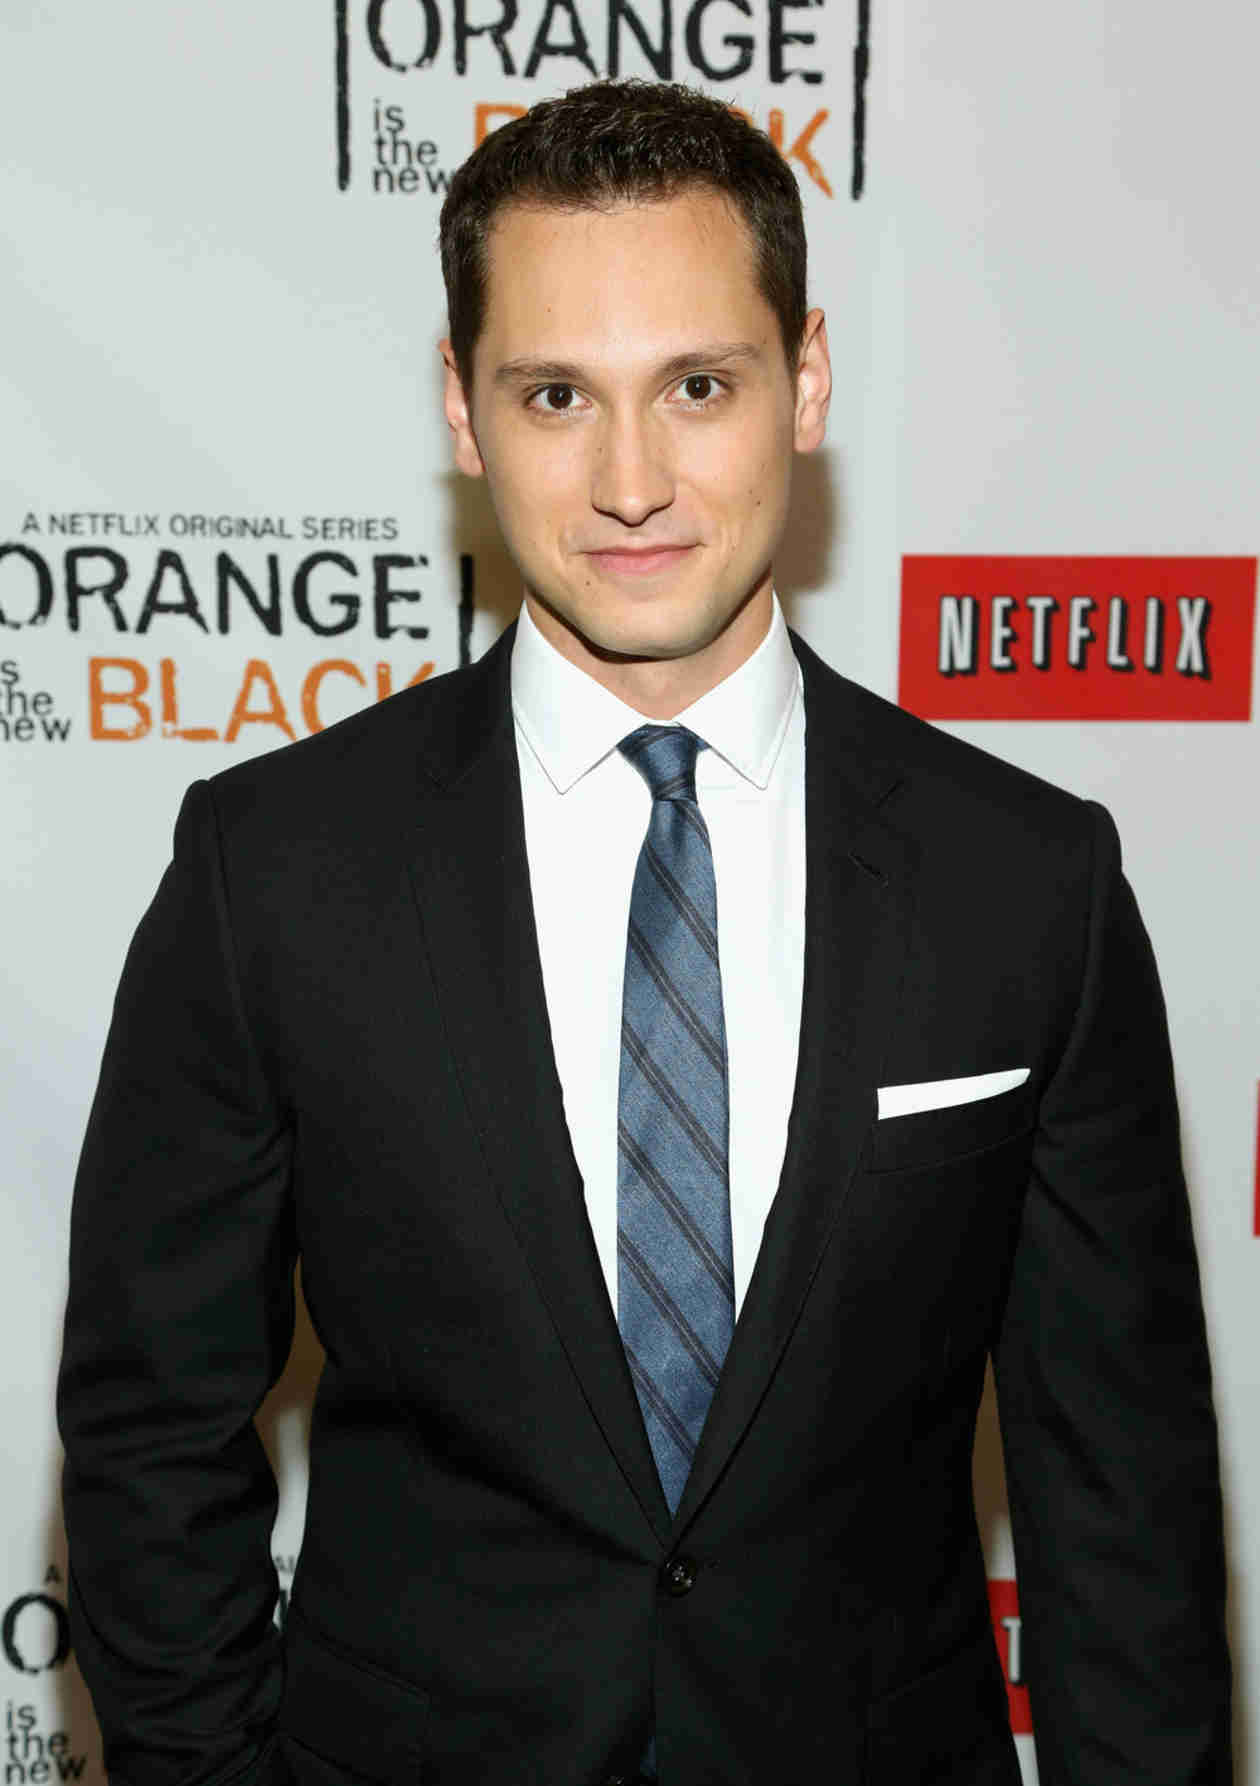 Orange Is the New Black Season 3: Is Matt McGorry Leaving Because of His New Show?